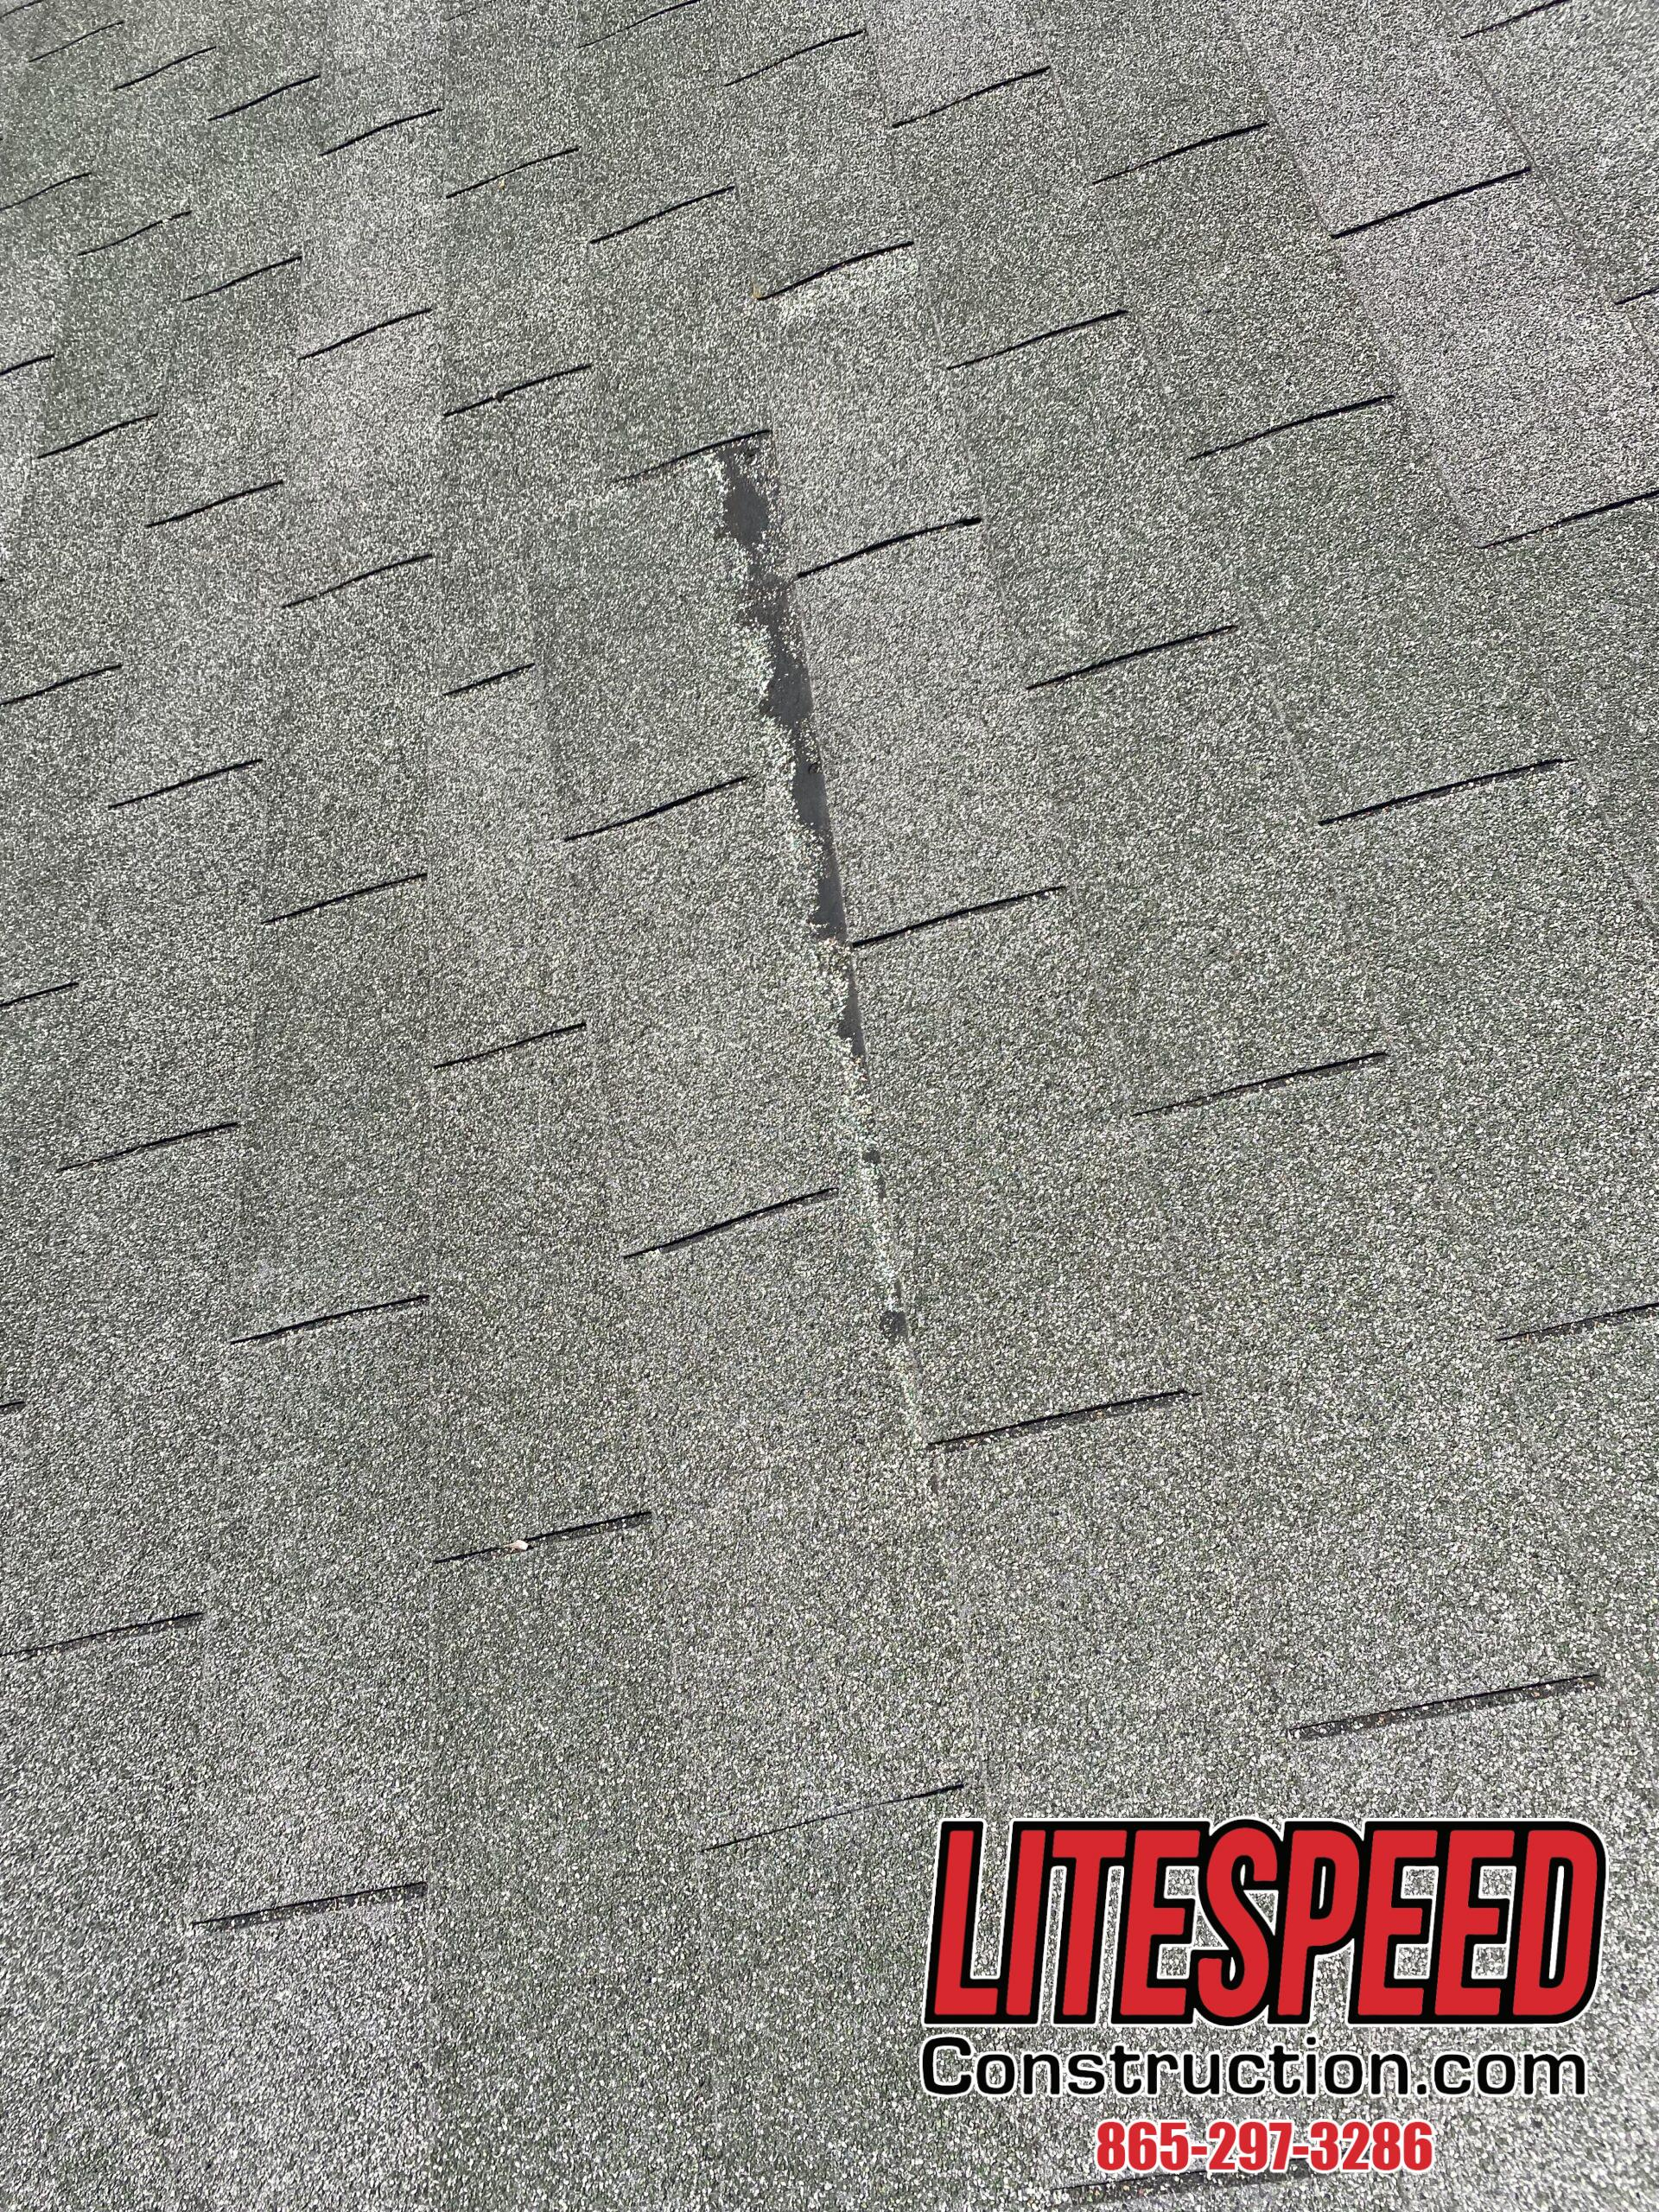 This is a picture of an old three tab roof with shingles sliding off